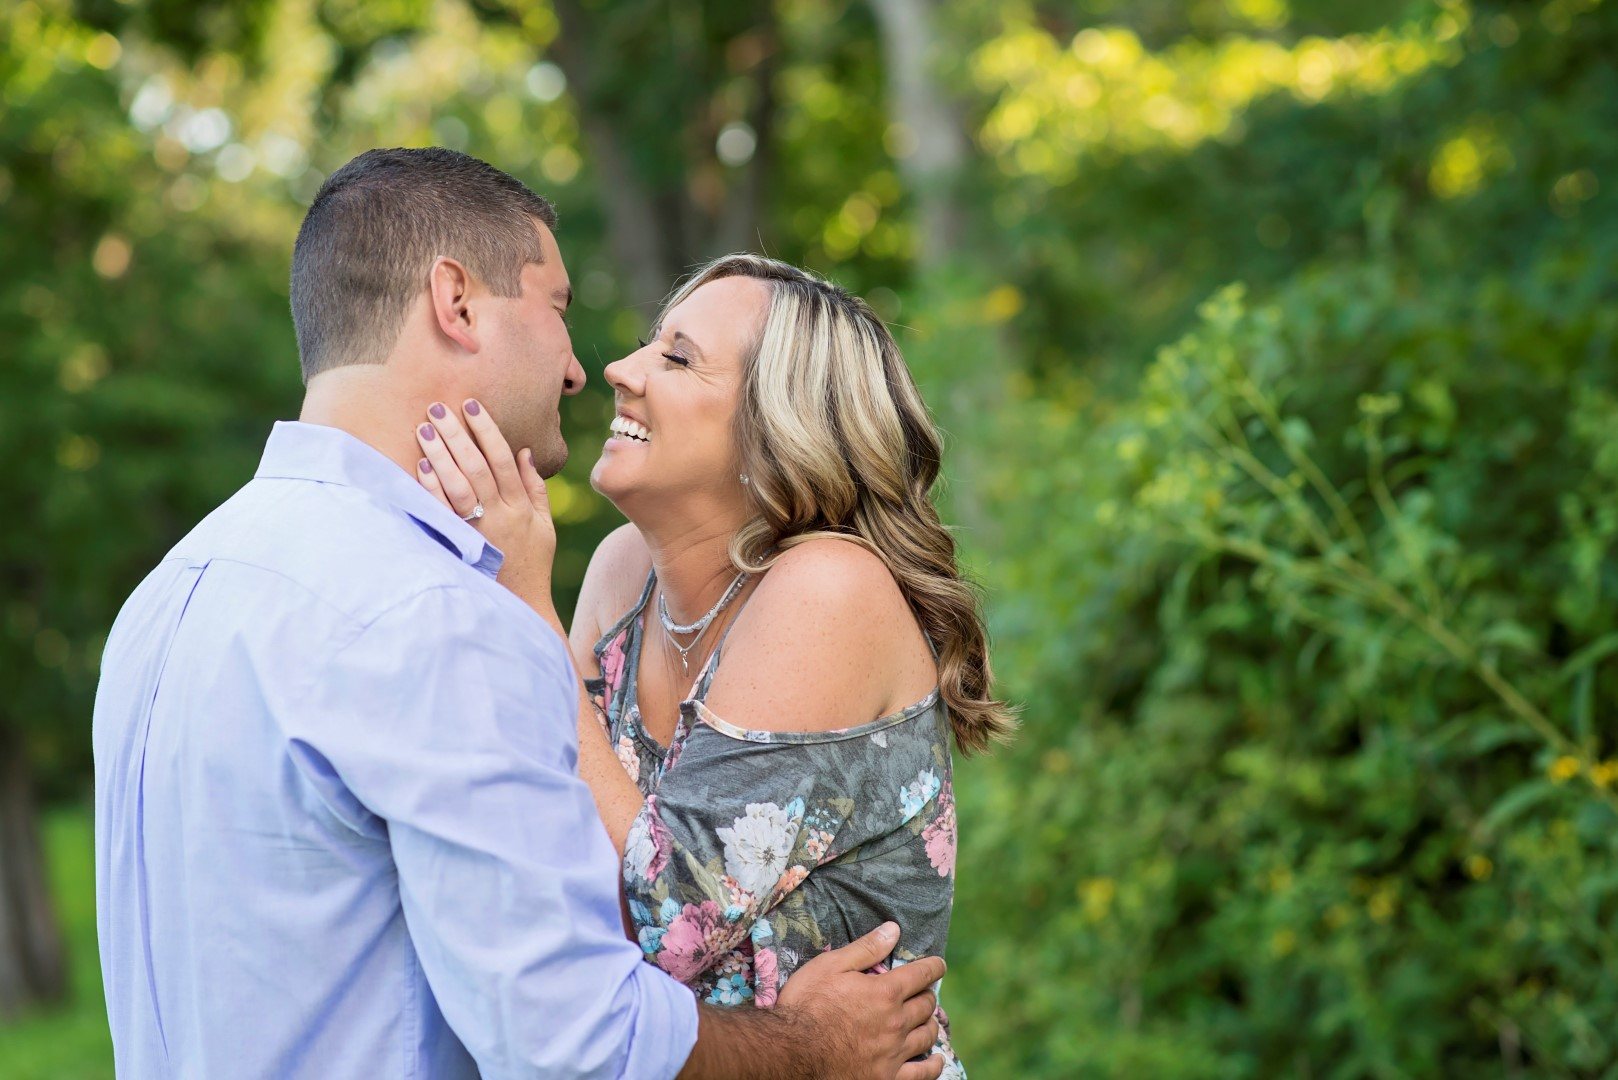 LeighAnn_Beau_Engagement_Collection_04 (Large).jpg